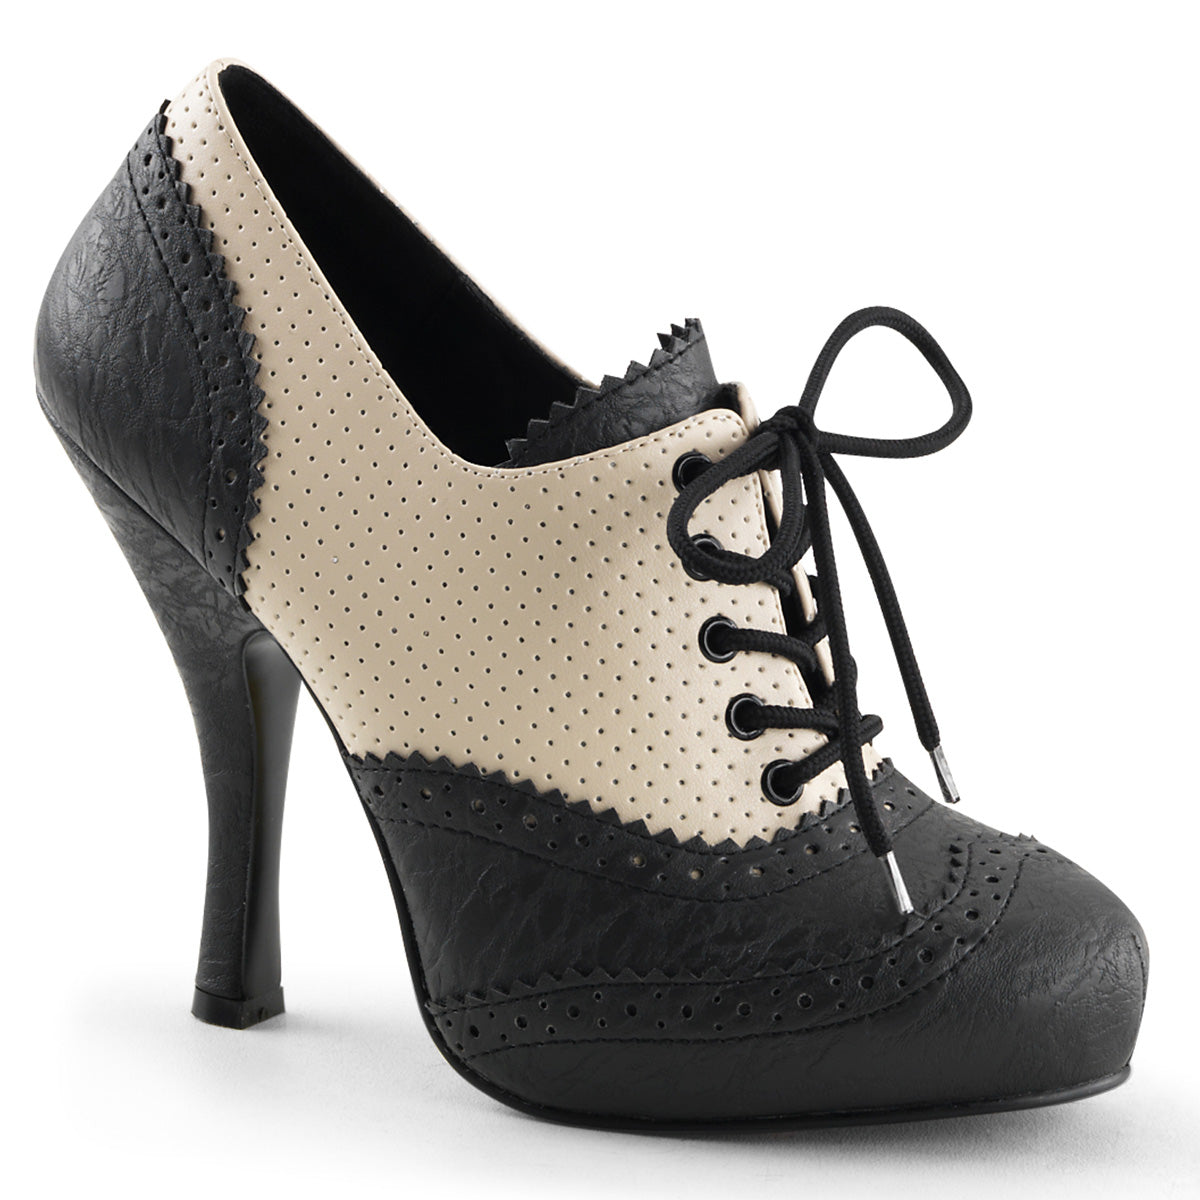 "4 1/2"" Heel, 3/4"" Hidden PF Lace-Up Spectator Oxford"